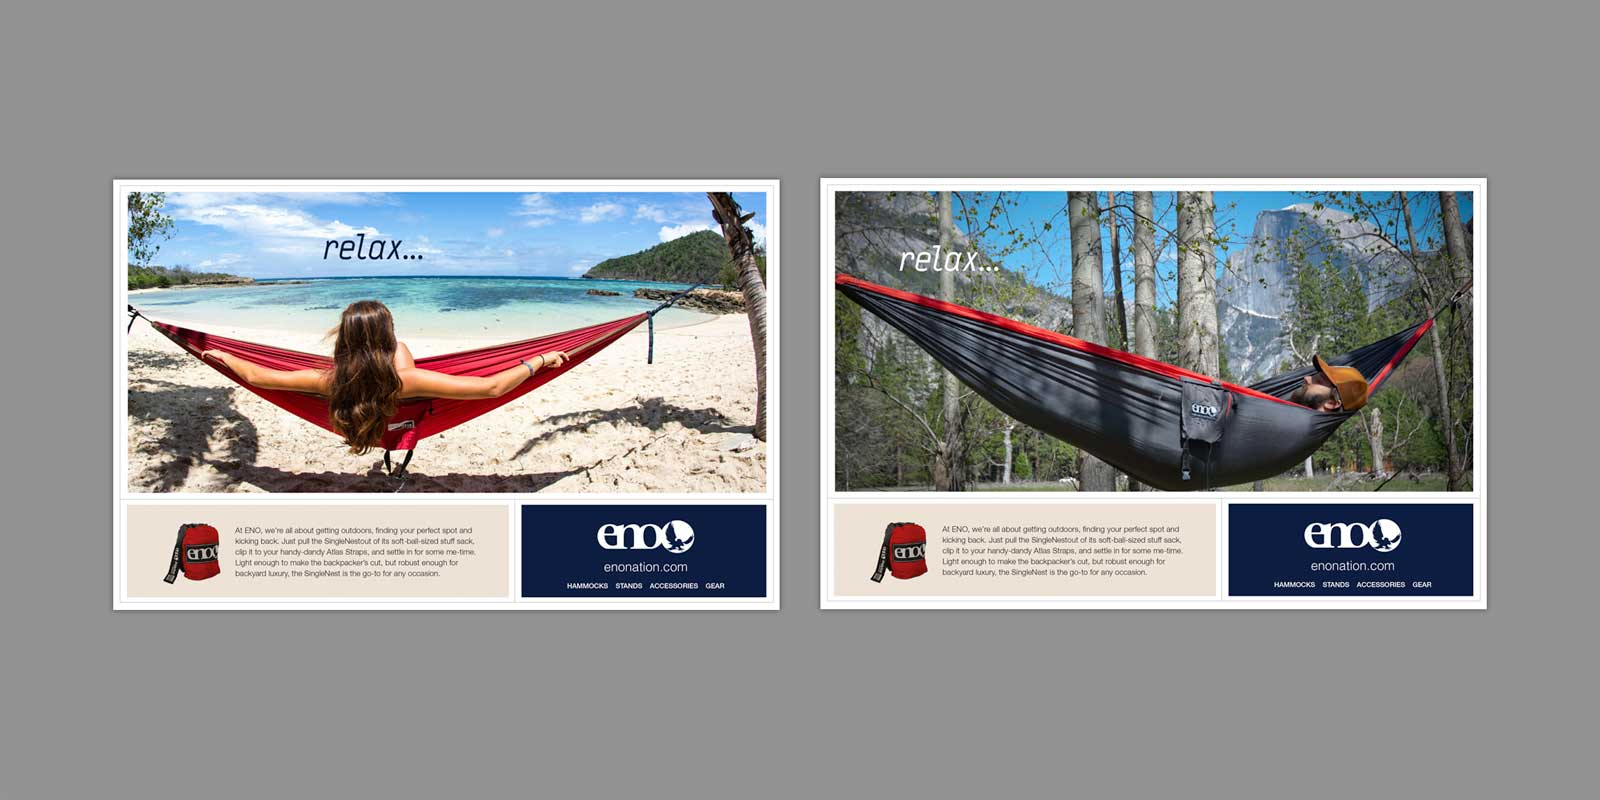 Eagle Nest Outfitter ads shows hammock hanging from tree with clear blue ocean and beach in background. Hammock hanging from two trees with Half Dome in Yosemite National Park, California